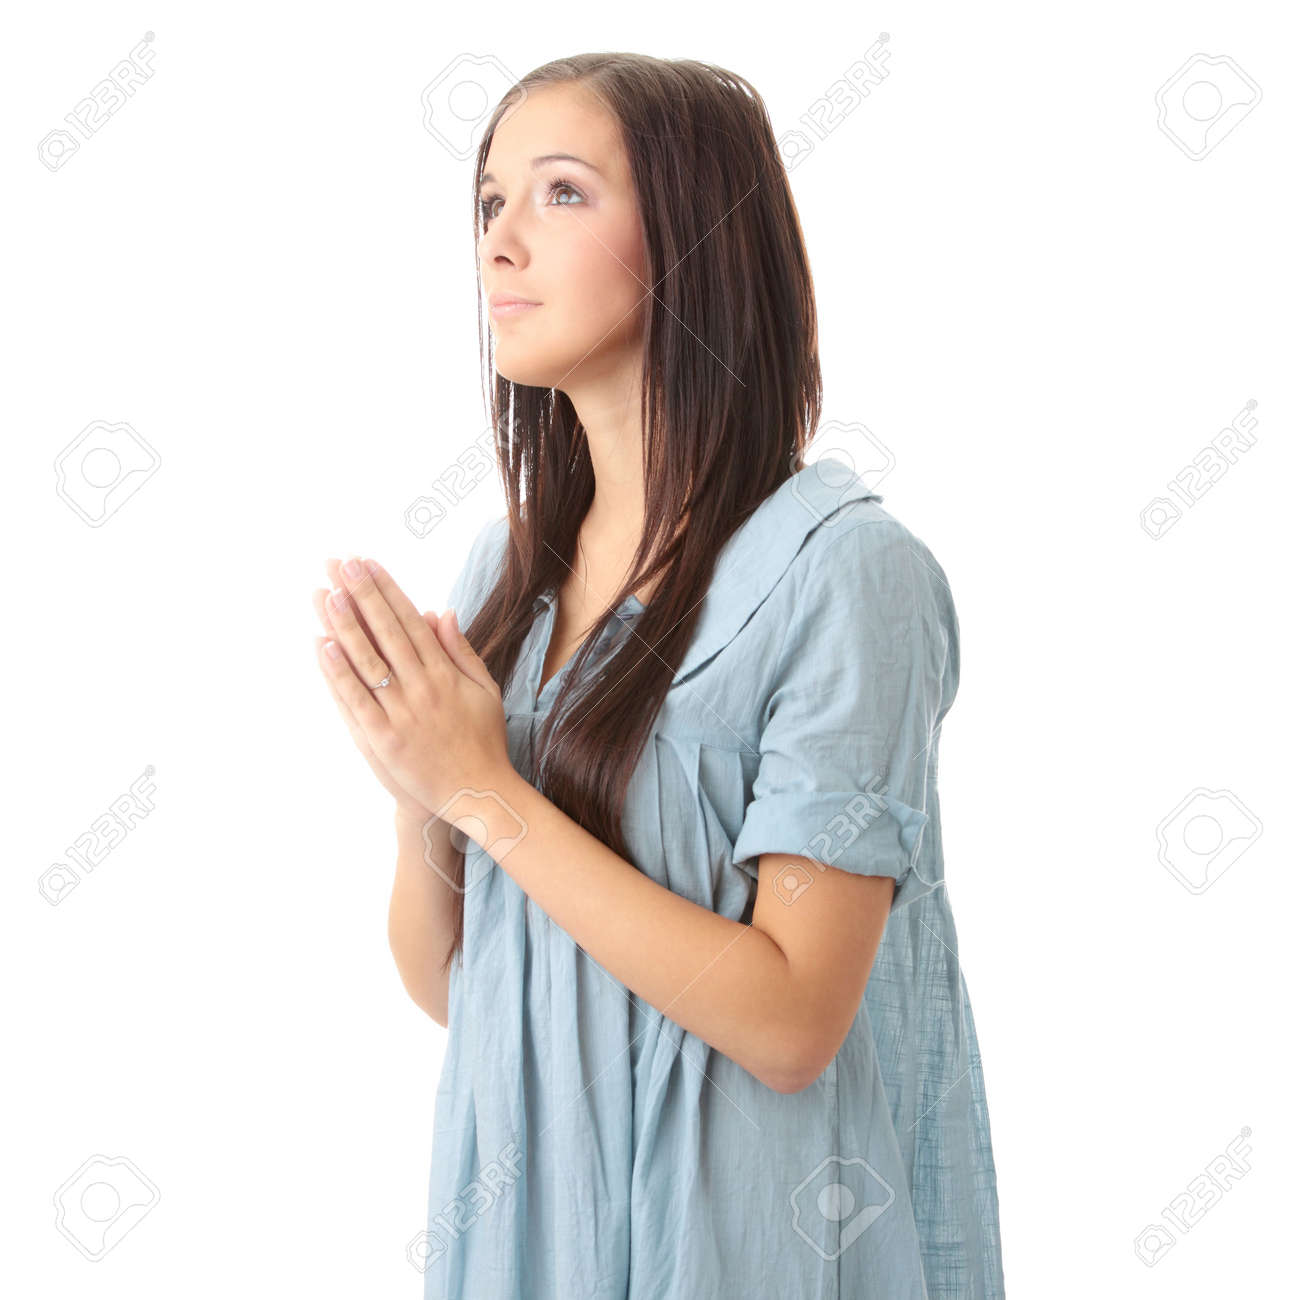 Closeup portrait of a young caucasian woman praying isolated on white background Stock Photo - 6439054